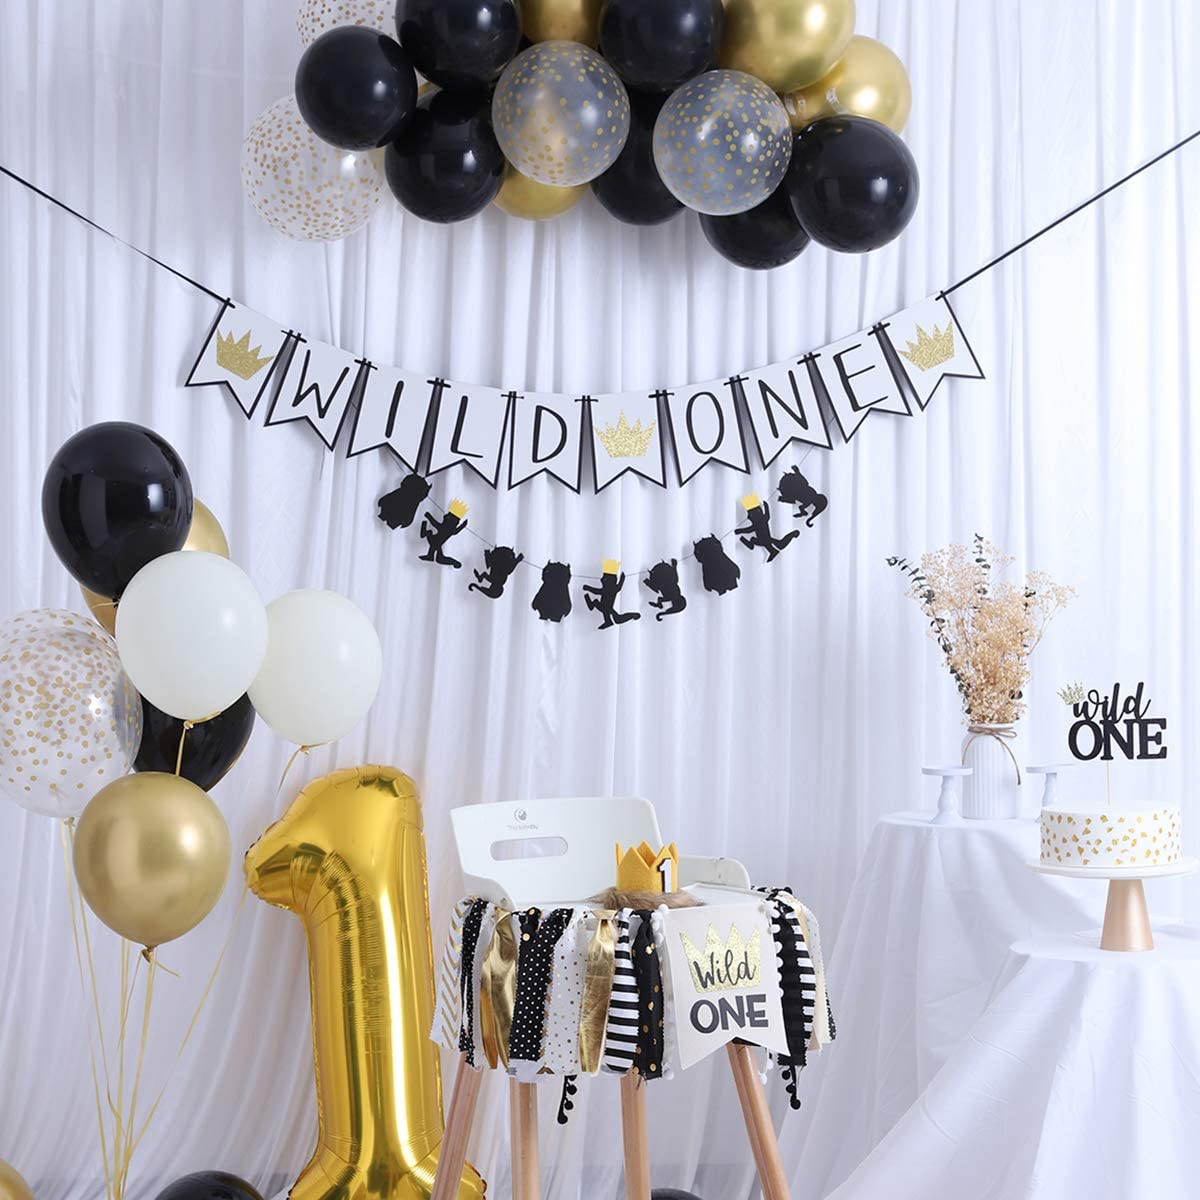 Wild One Party Decorations Supplies Kit - 47pcs, Where The Wild Things,wild One-inspired Garland,Golden Aluminum Balloon 1,Latex Balloons,Banner,Crown Hat, Cake Topper